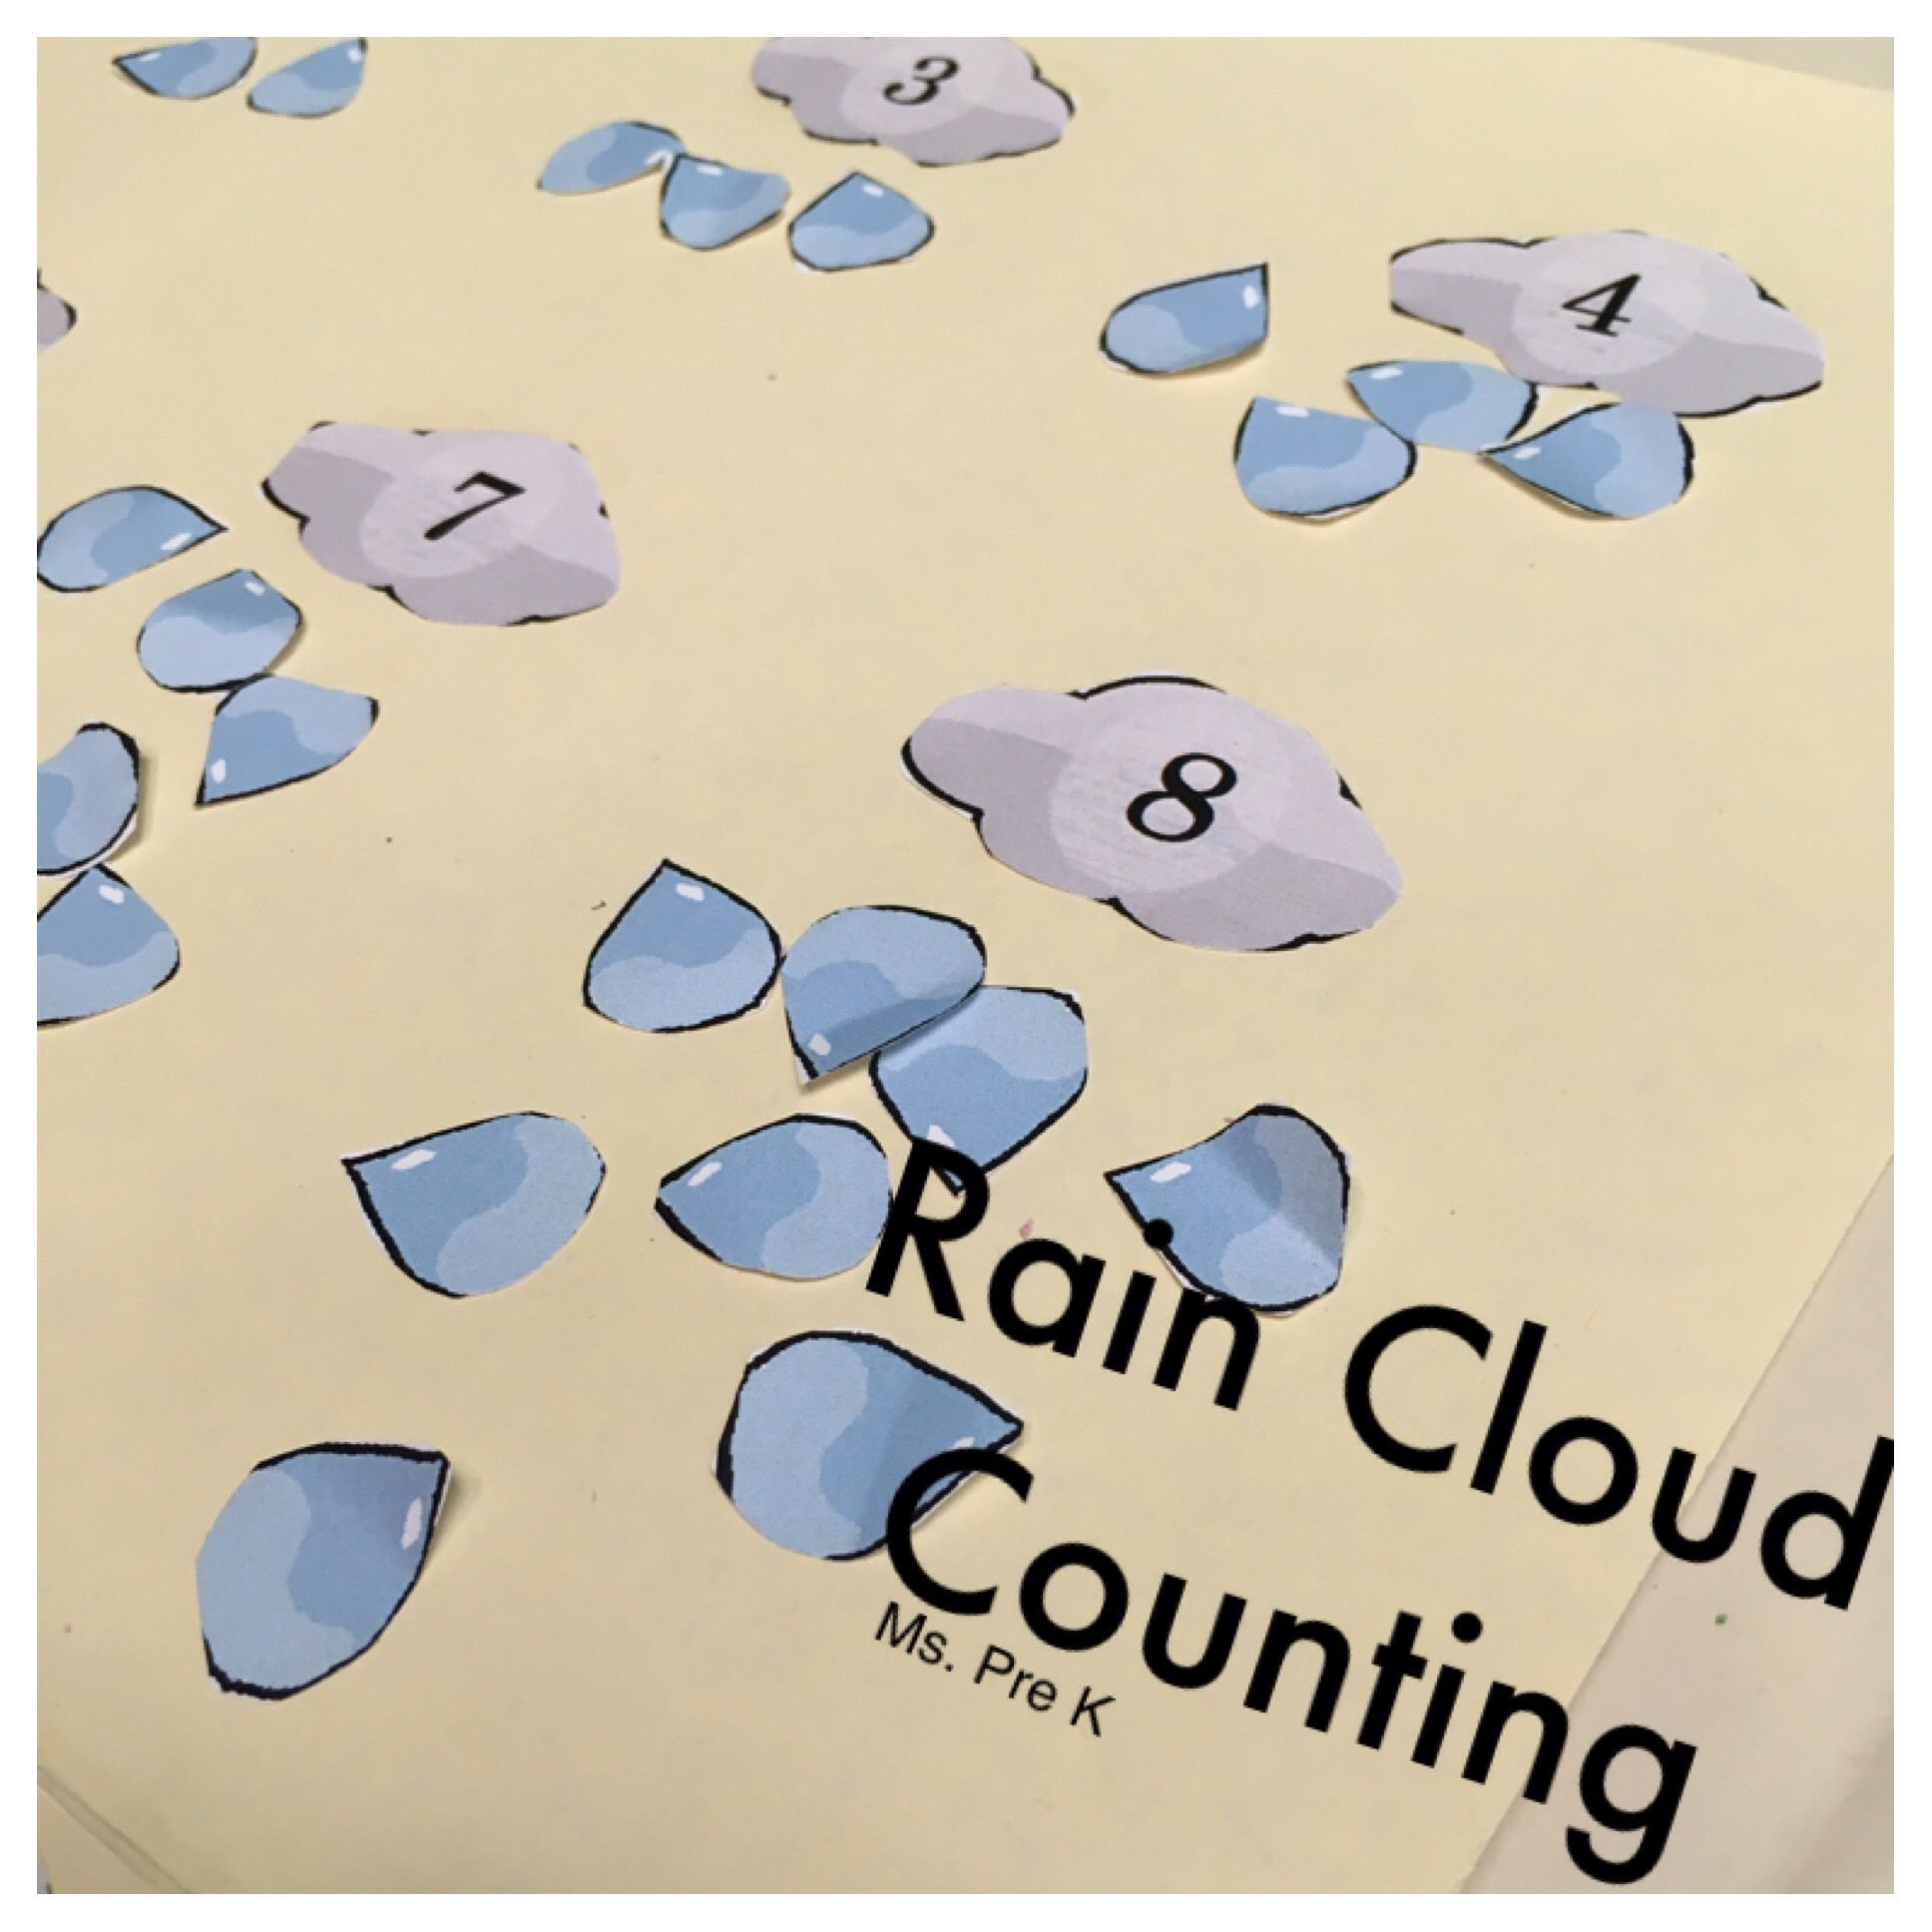 Preschool Rain Cloud Counting File Folder Game